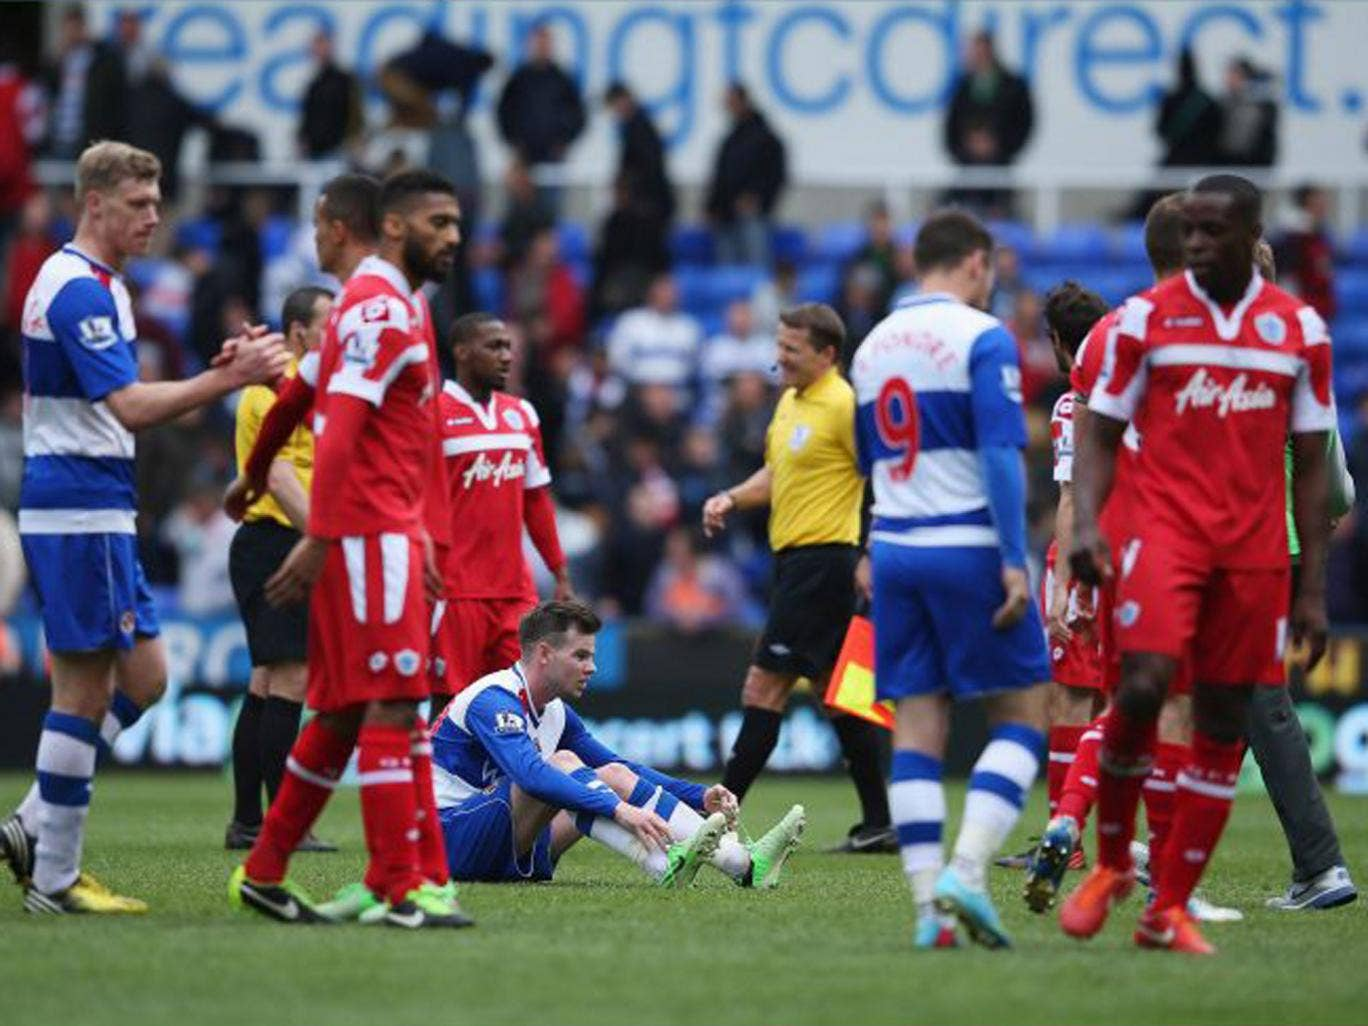 Danny Guthrie of Reading sits on the ground dejected after his team and QPR were relegated during the Barclays Premier League match between Reading and Queens Park Rangers at the Madejski Stadium